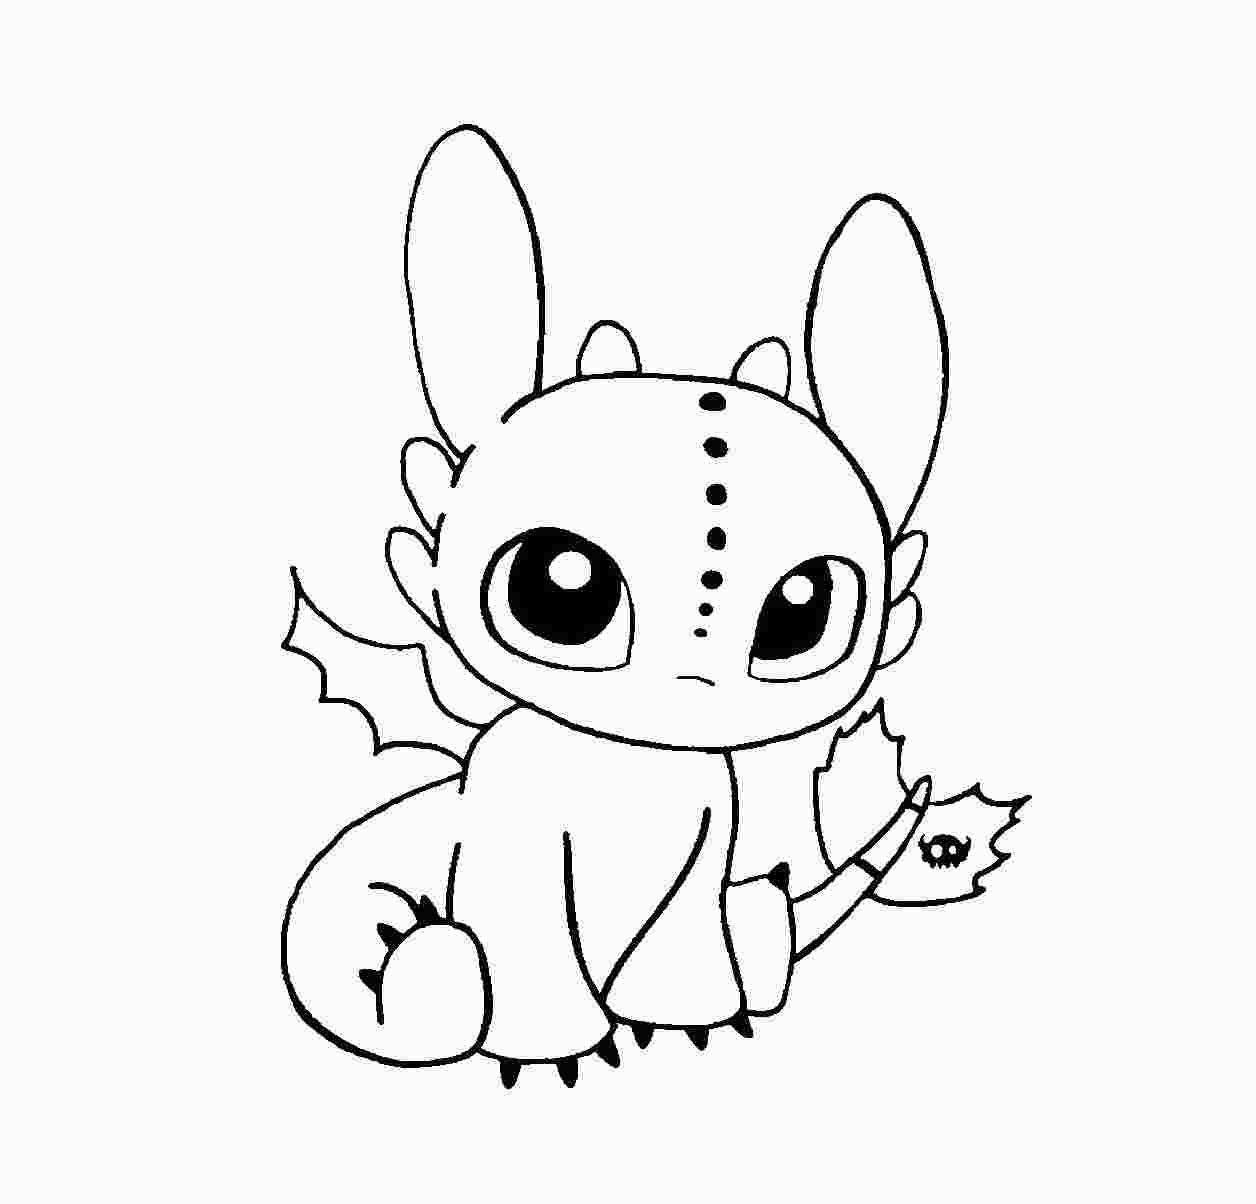 baby toothless coloring pages  Dragon coloring page, Easy dragon